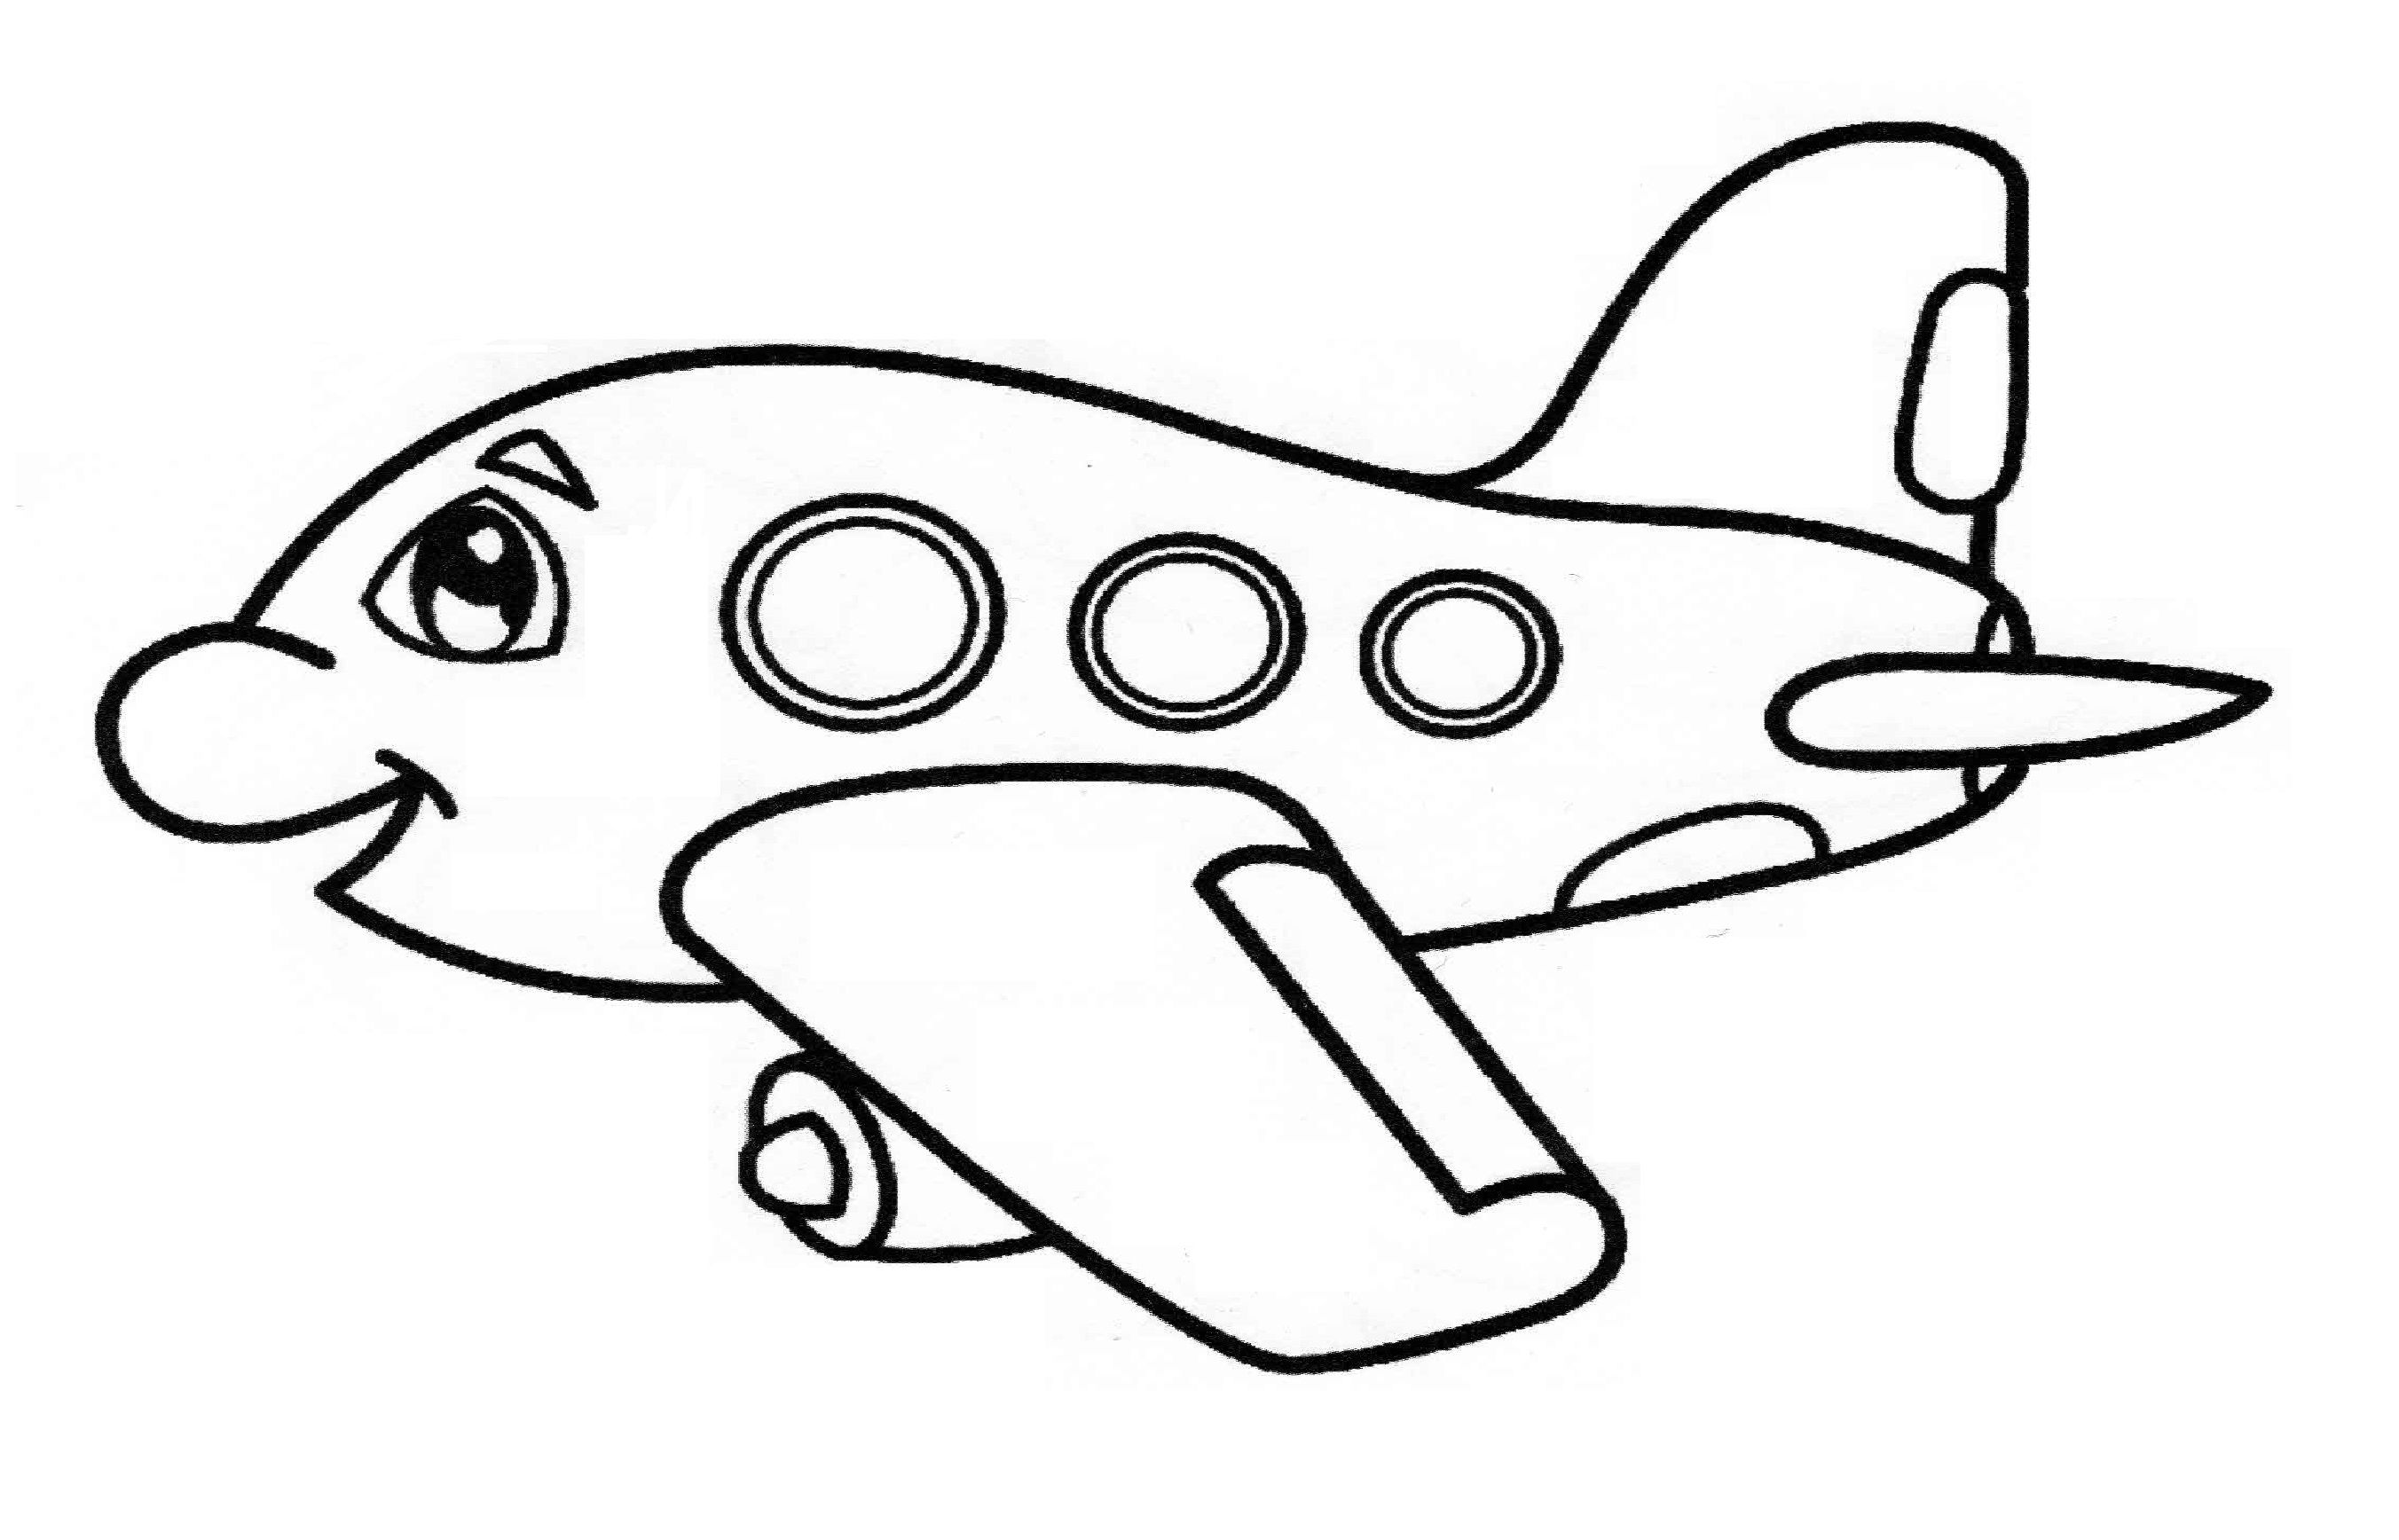 Airplane Coloring Page For Preschool And Kindergarten Preschool And Kindergarten Airplane Coloring Pages Preschool Coloring Pages Coloring Pages For Kids